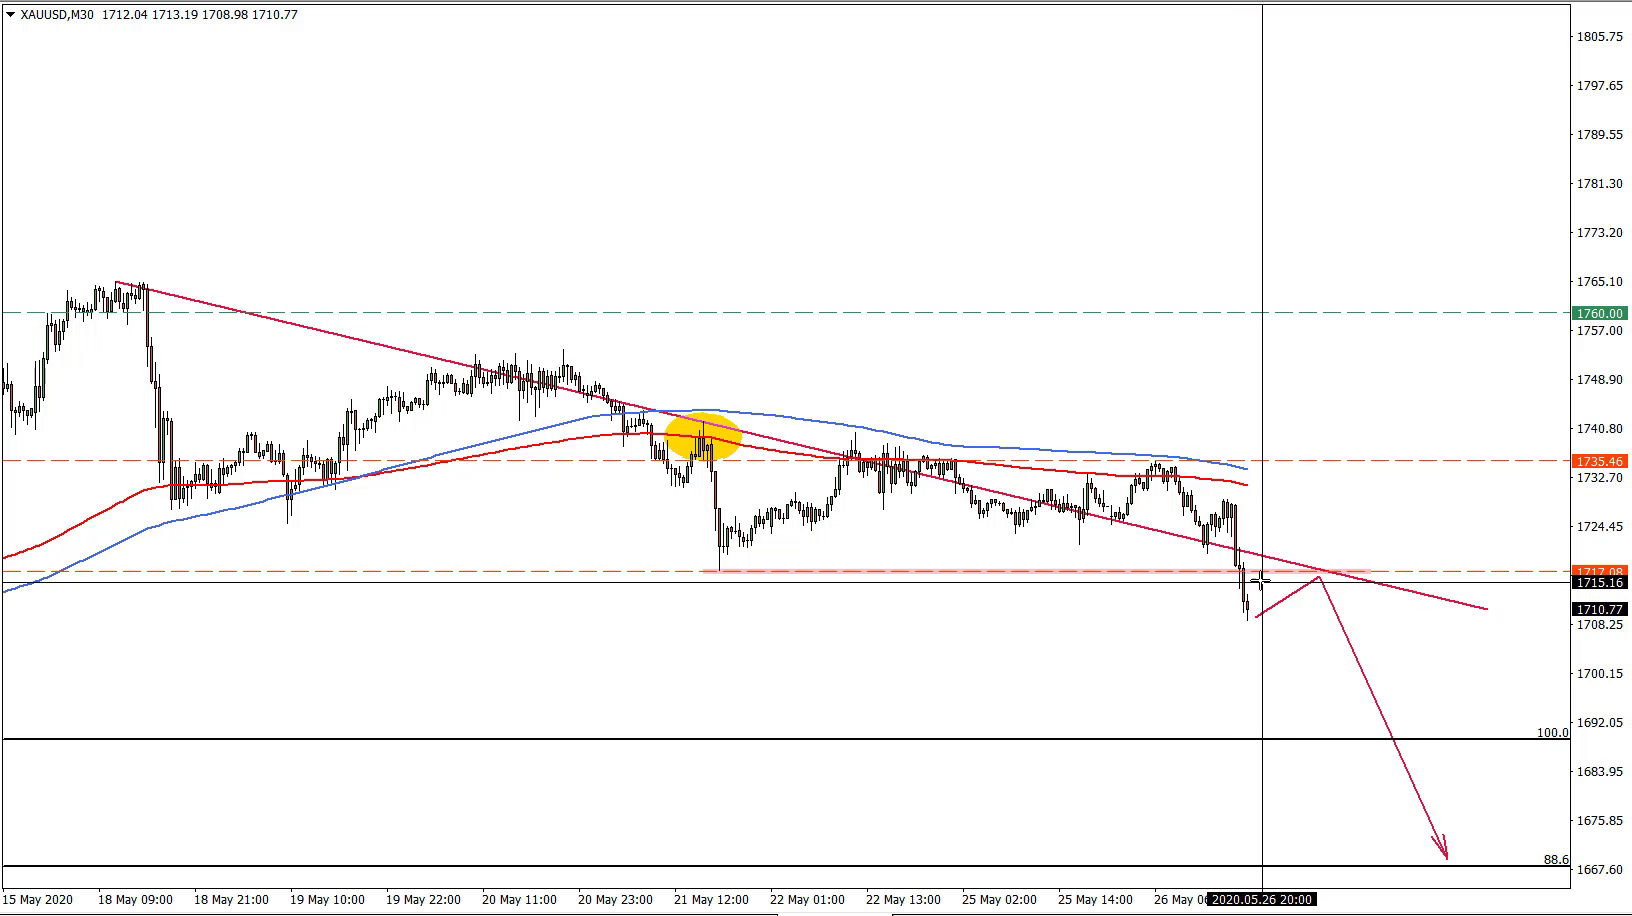 XAUUSD Trade Idea May 26th 2020